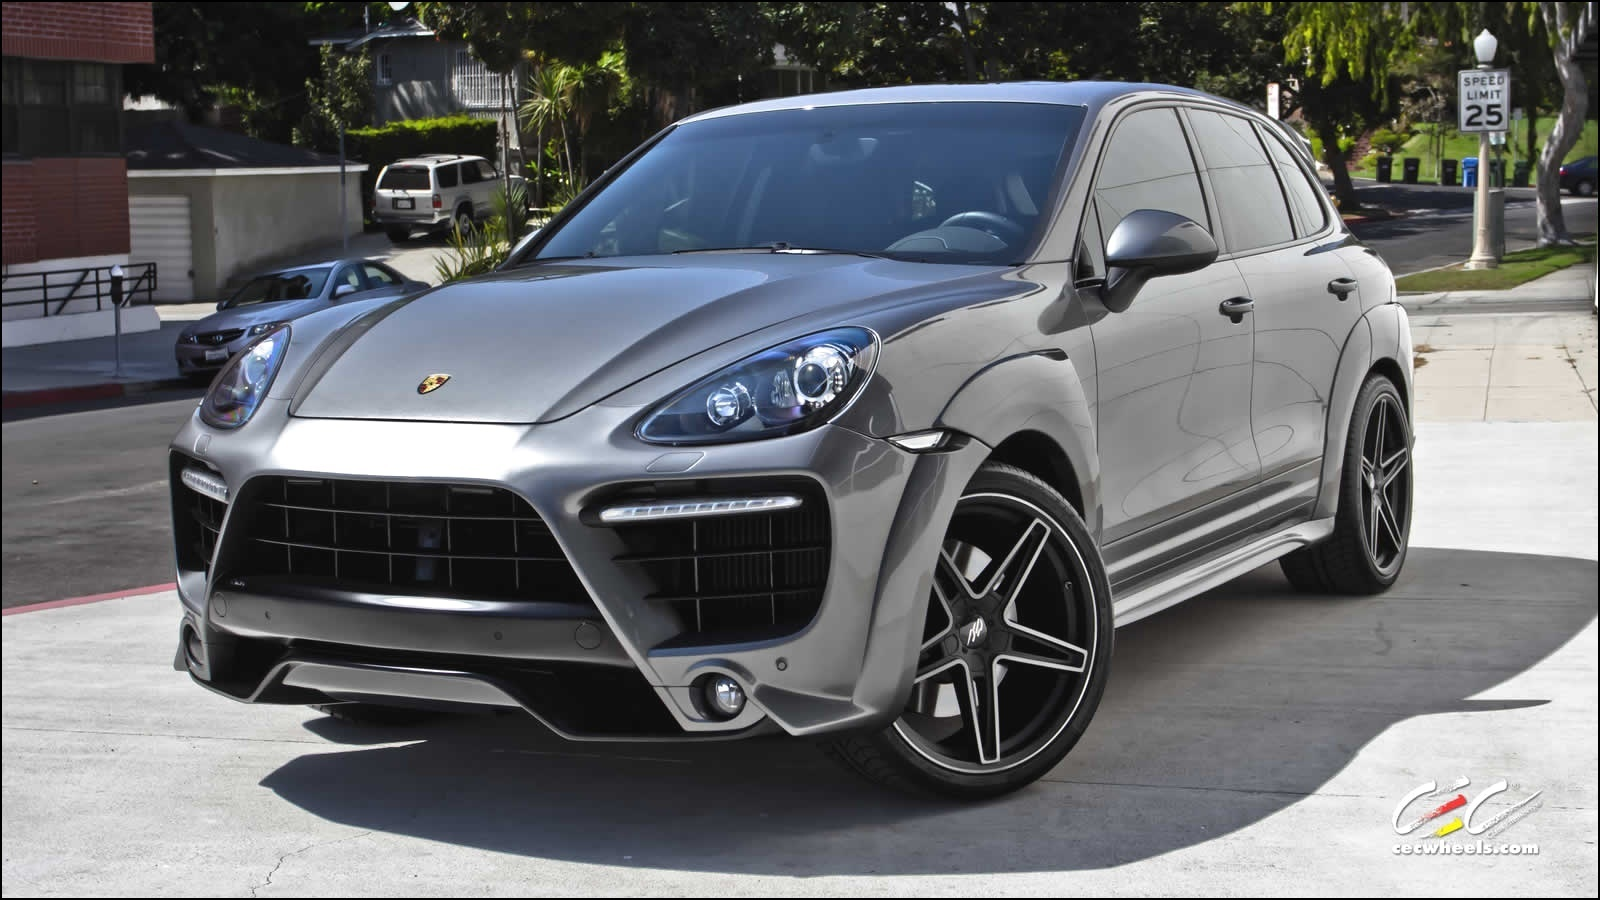 images-products-1-7502-232987982-2013-porsche-cayenne-gts-for-sale-inspirational-caractere-porsche-cayenne-turbo-rare-cars-for-sa.jpg